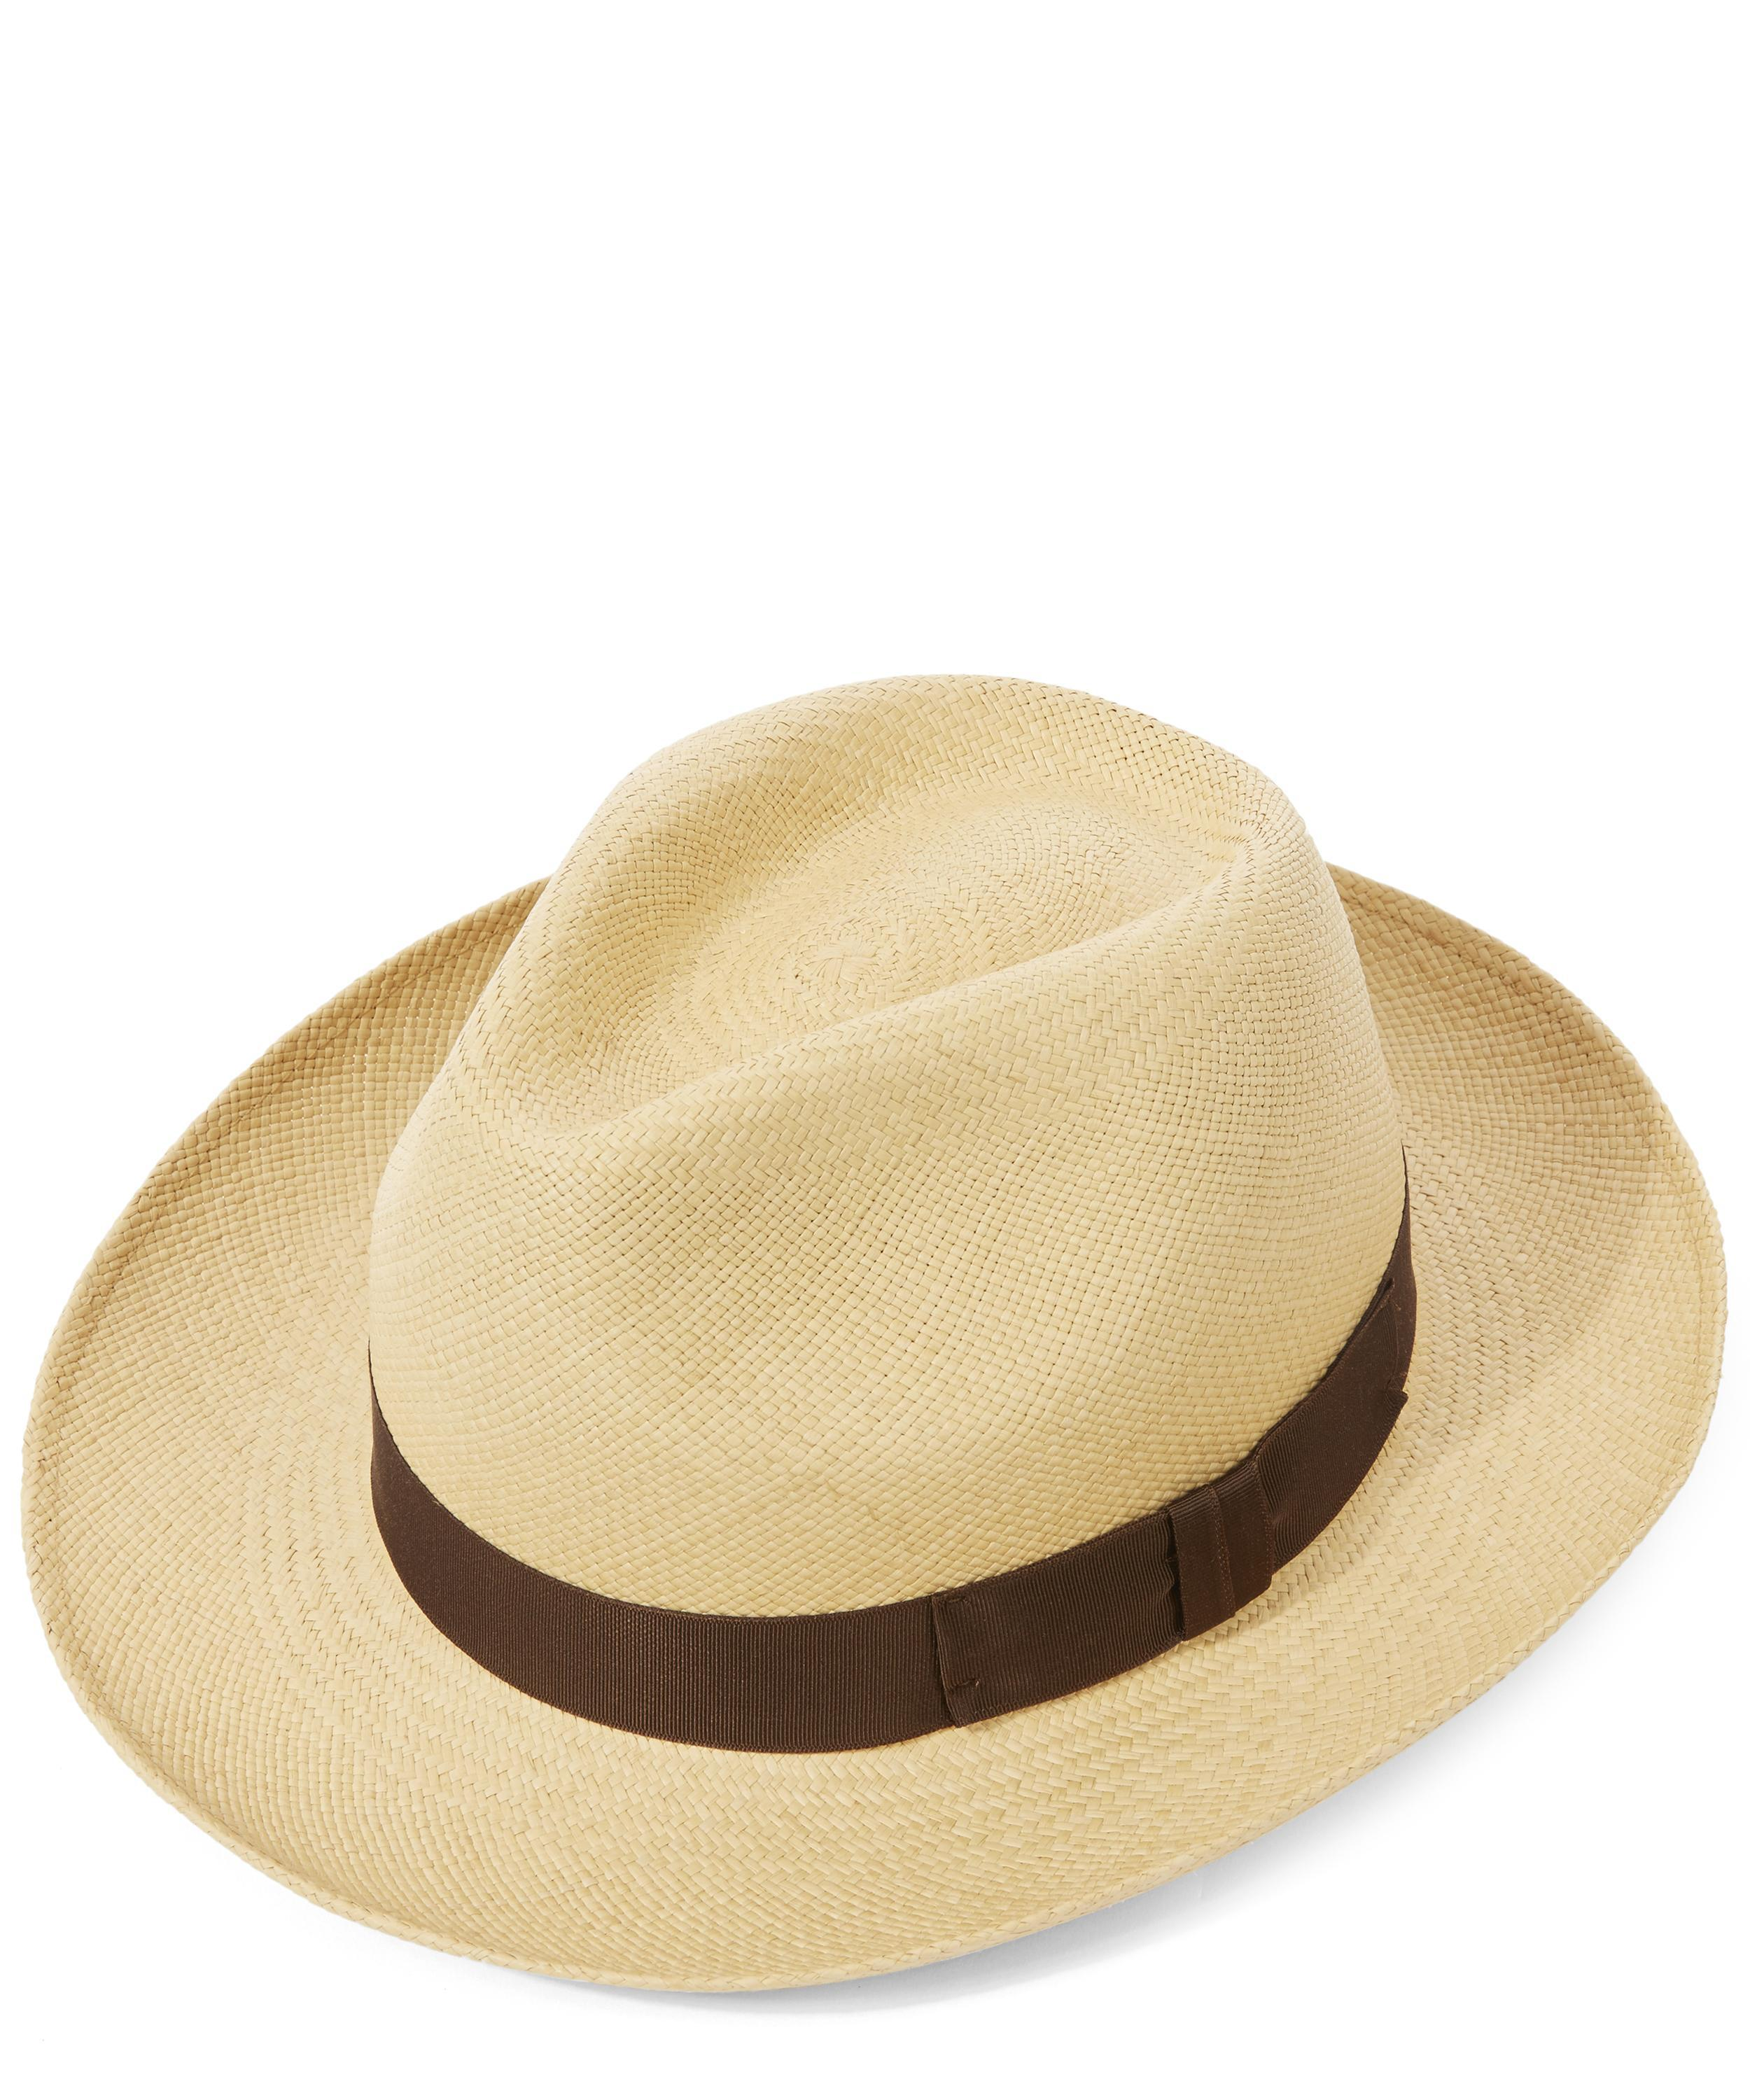 2adf23c8a Christys' Classic Preset Panama Hat in Brown for Men - Lyst